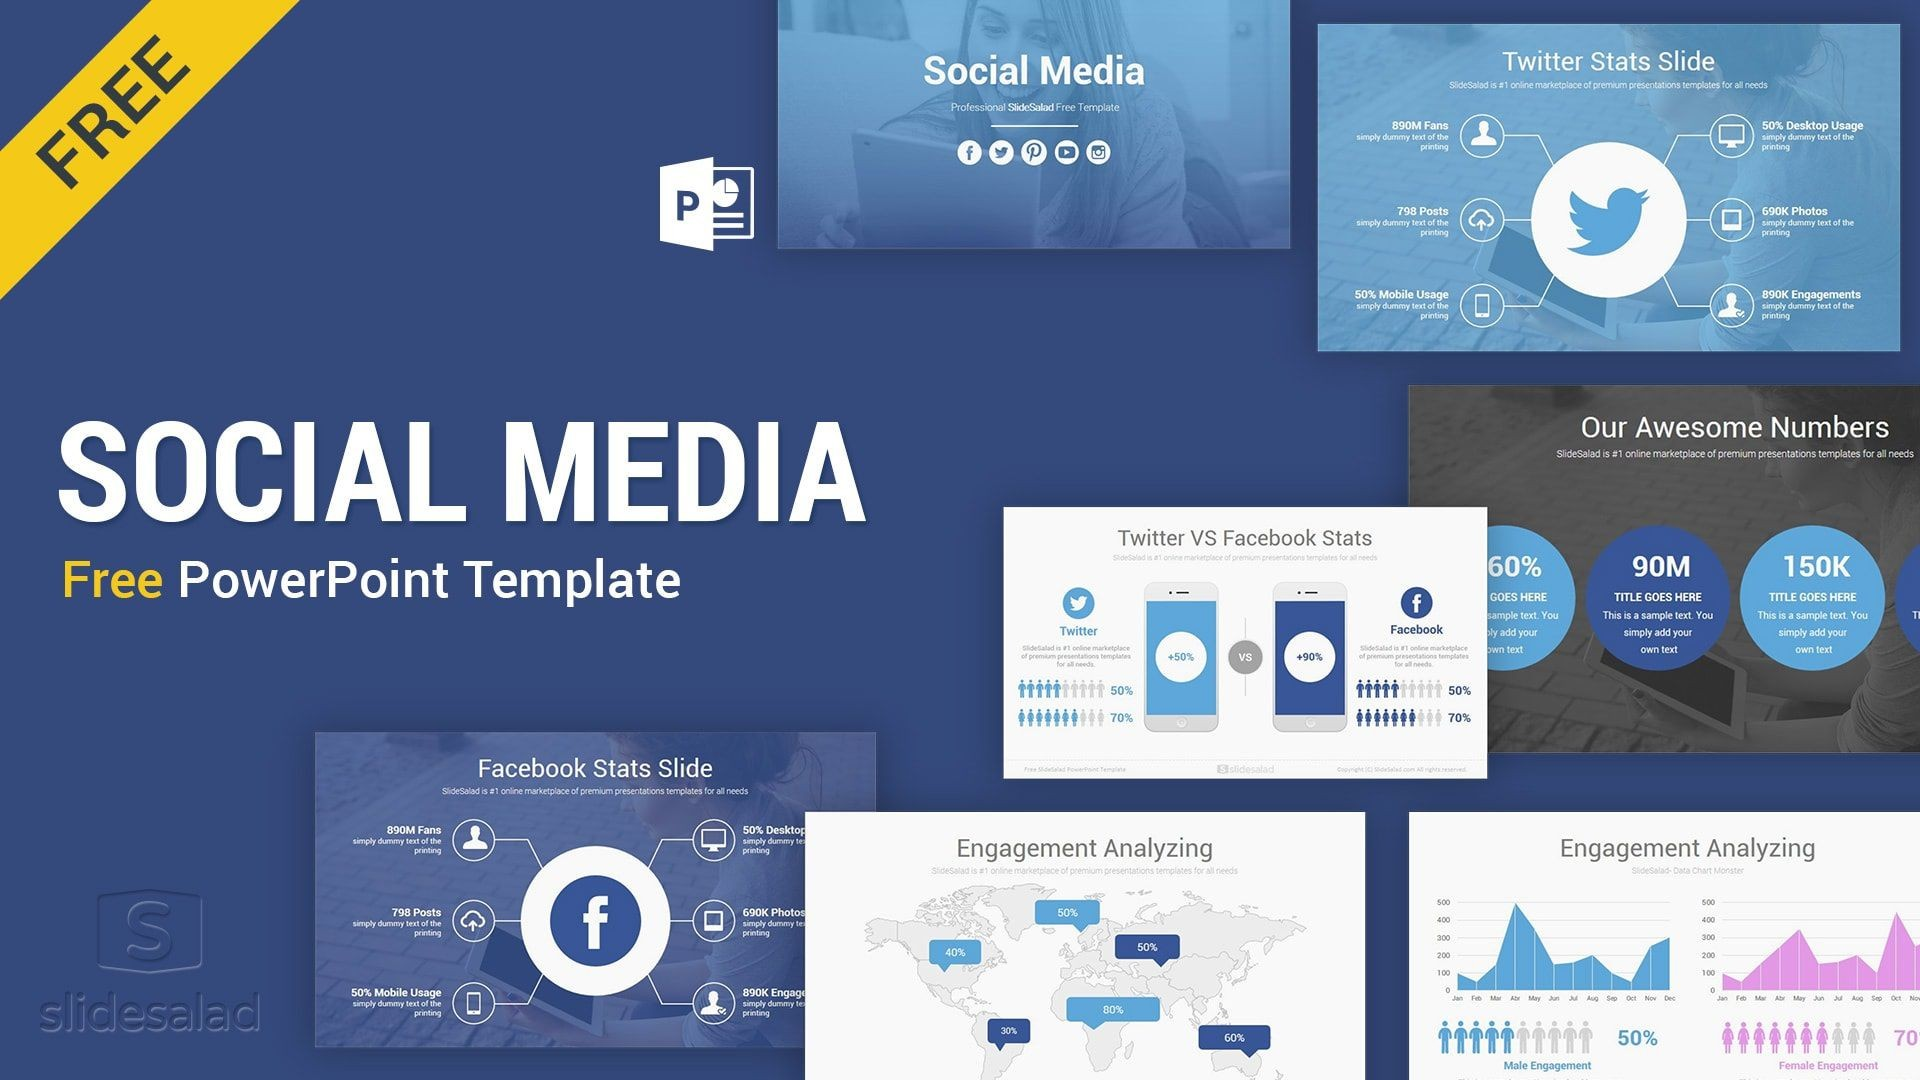 003 Fascinating Social Media Powerpoint Template Picture  Templates Report Free Social-media-marketing-powerpoint-template1920